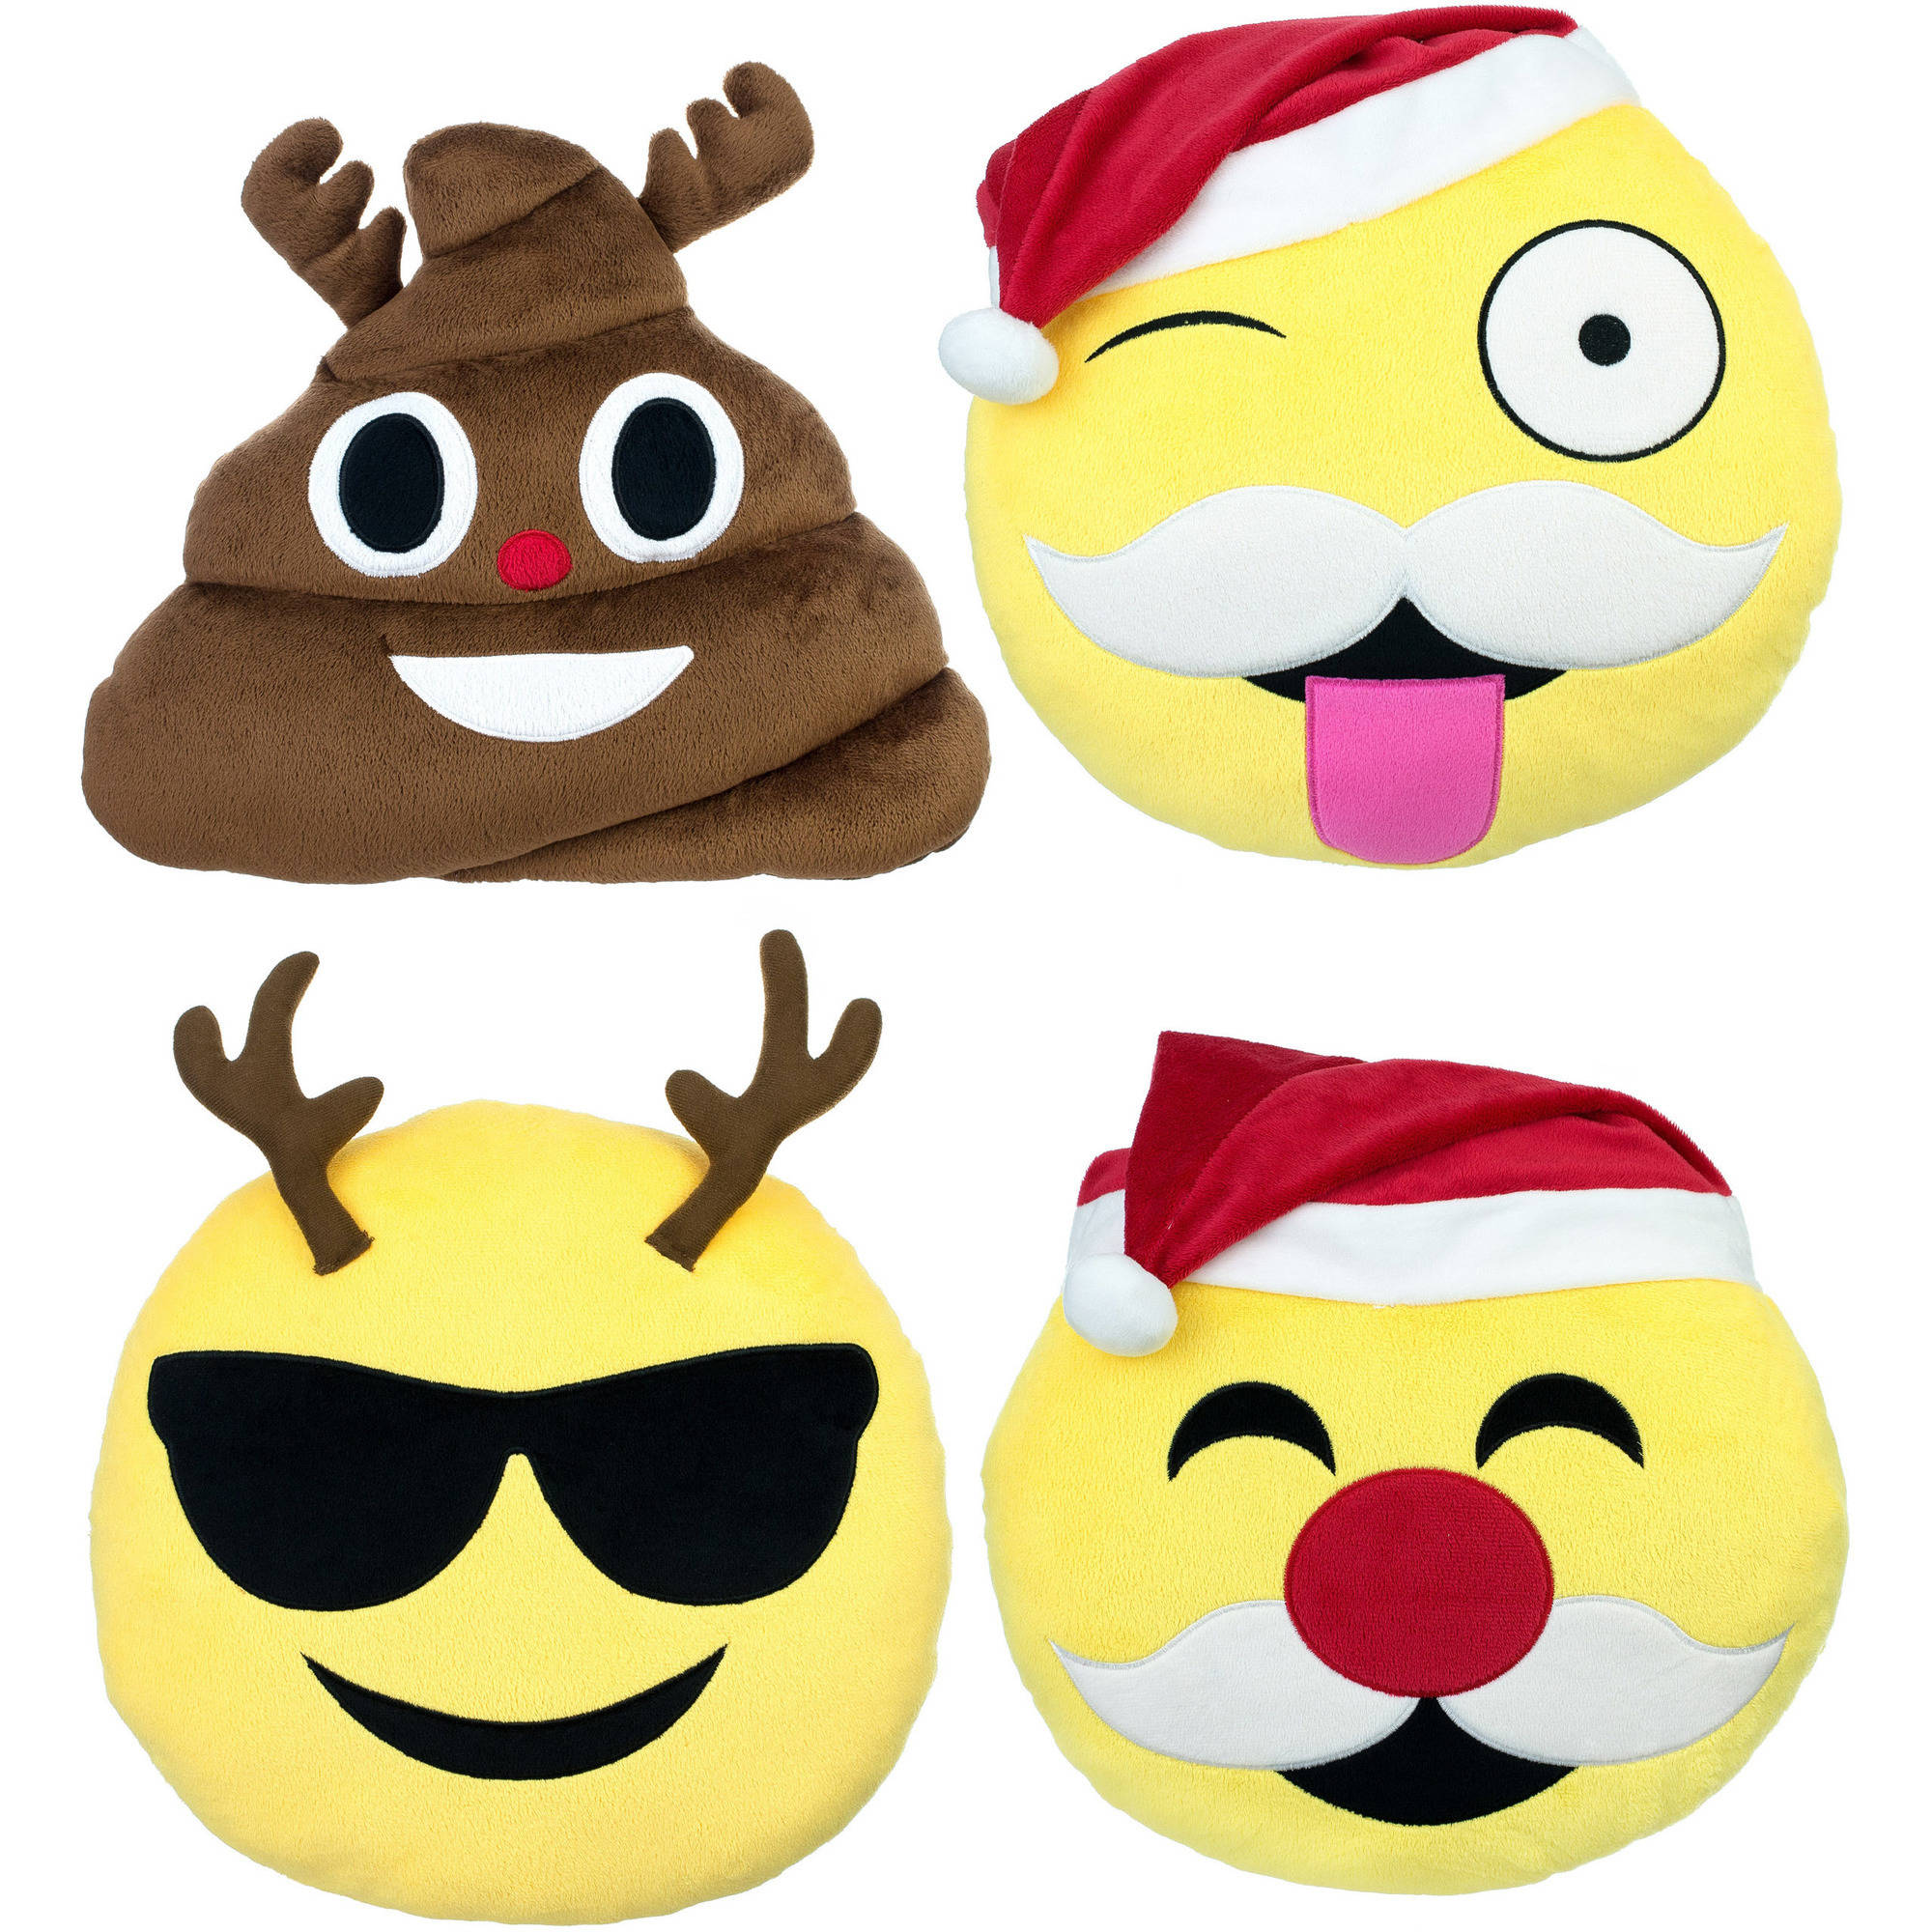 Emoji Expressions Holiday Pillows, 4-Pack